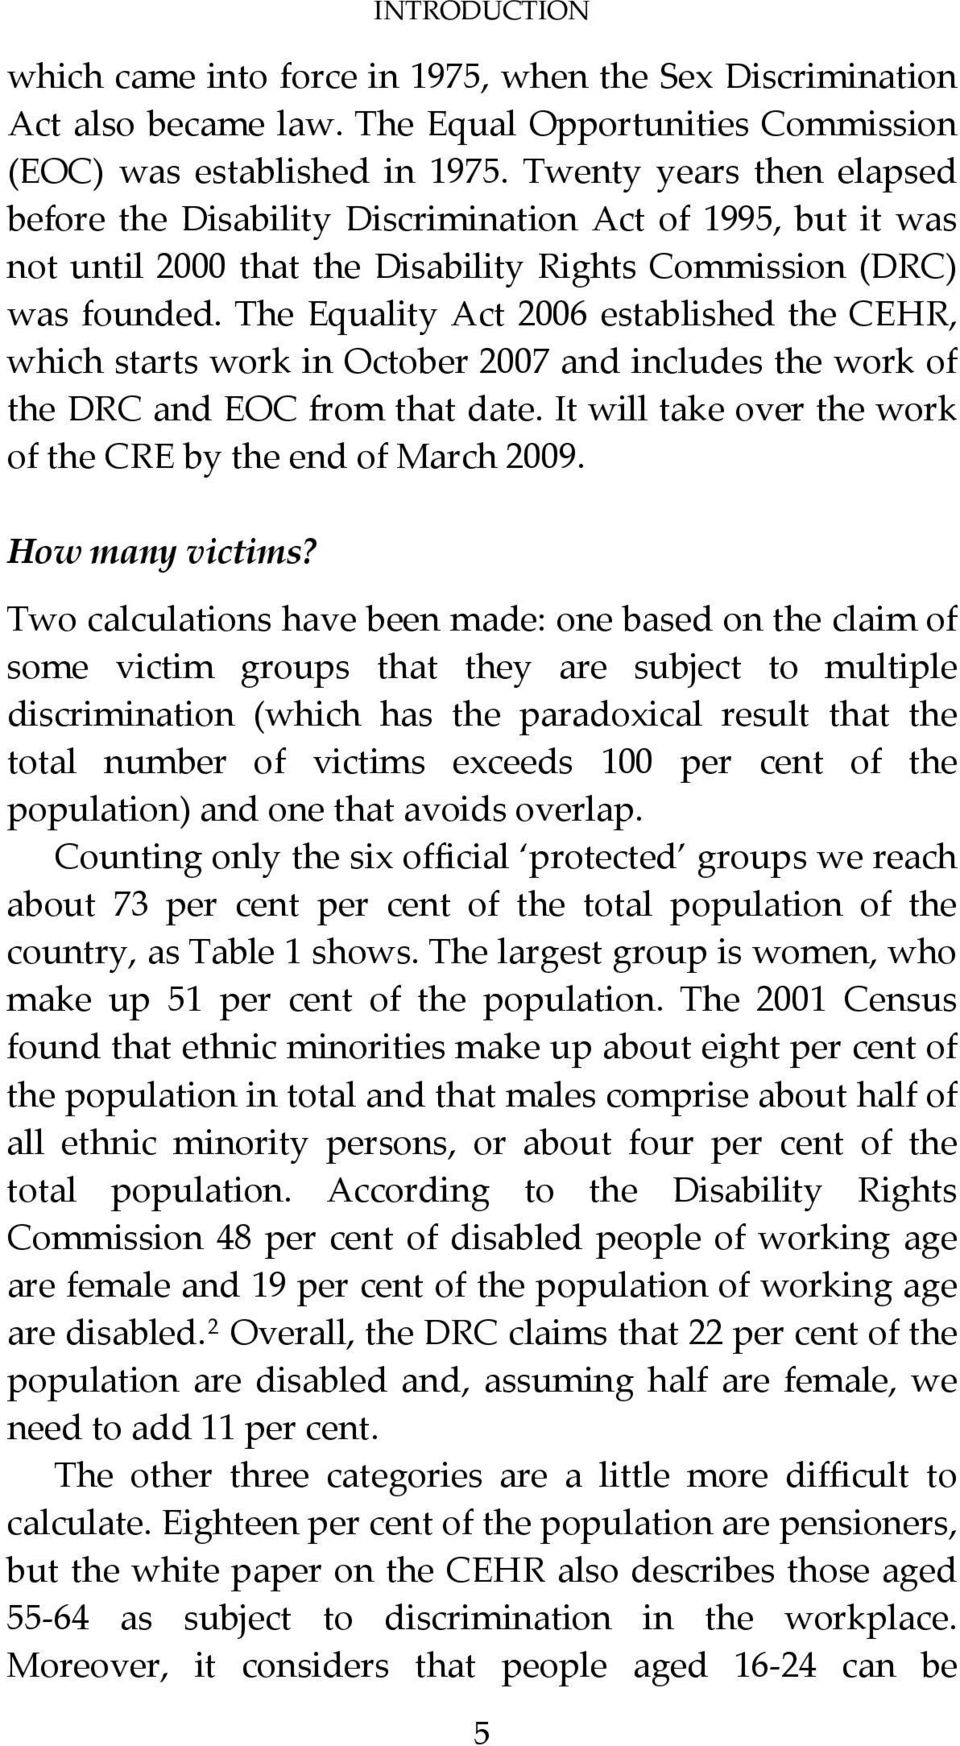 The Equality Act 2006 established the CEHR, which starts work in October 2007 and includes the work of the DRC and EOC from that date. It will take over the work of the CRE by the end of March 2009.